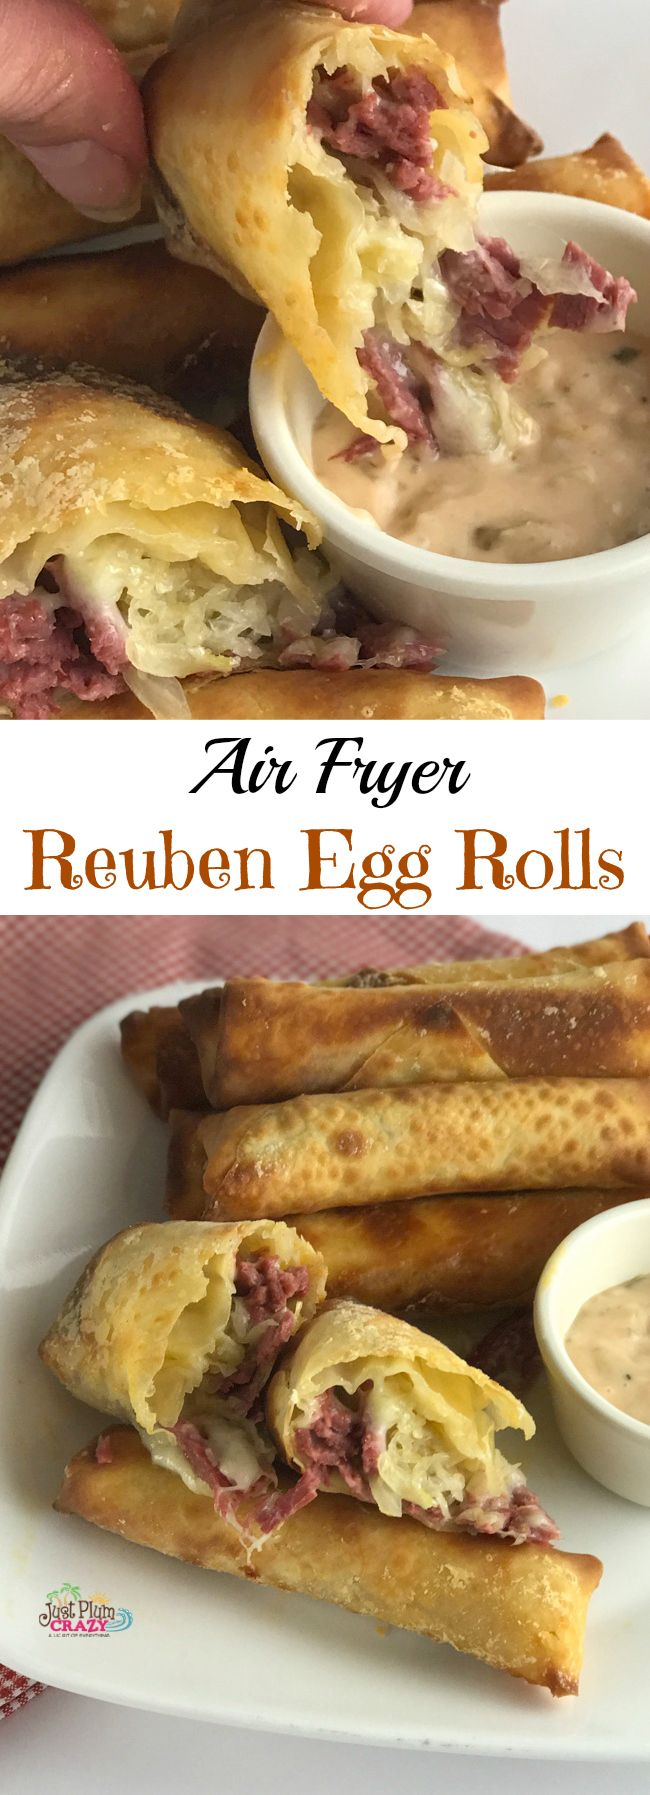 Best 25 pork egg rolls ideas on pinterest chinese egg rolls air fryer reuben egg rolls recipe for st patricks day is filled with corned beef forumfinder Choice Image